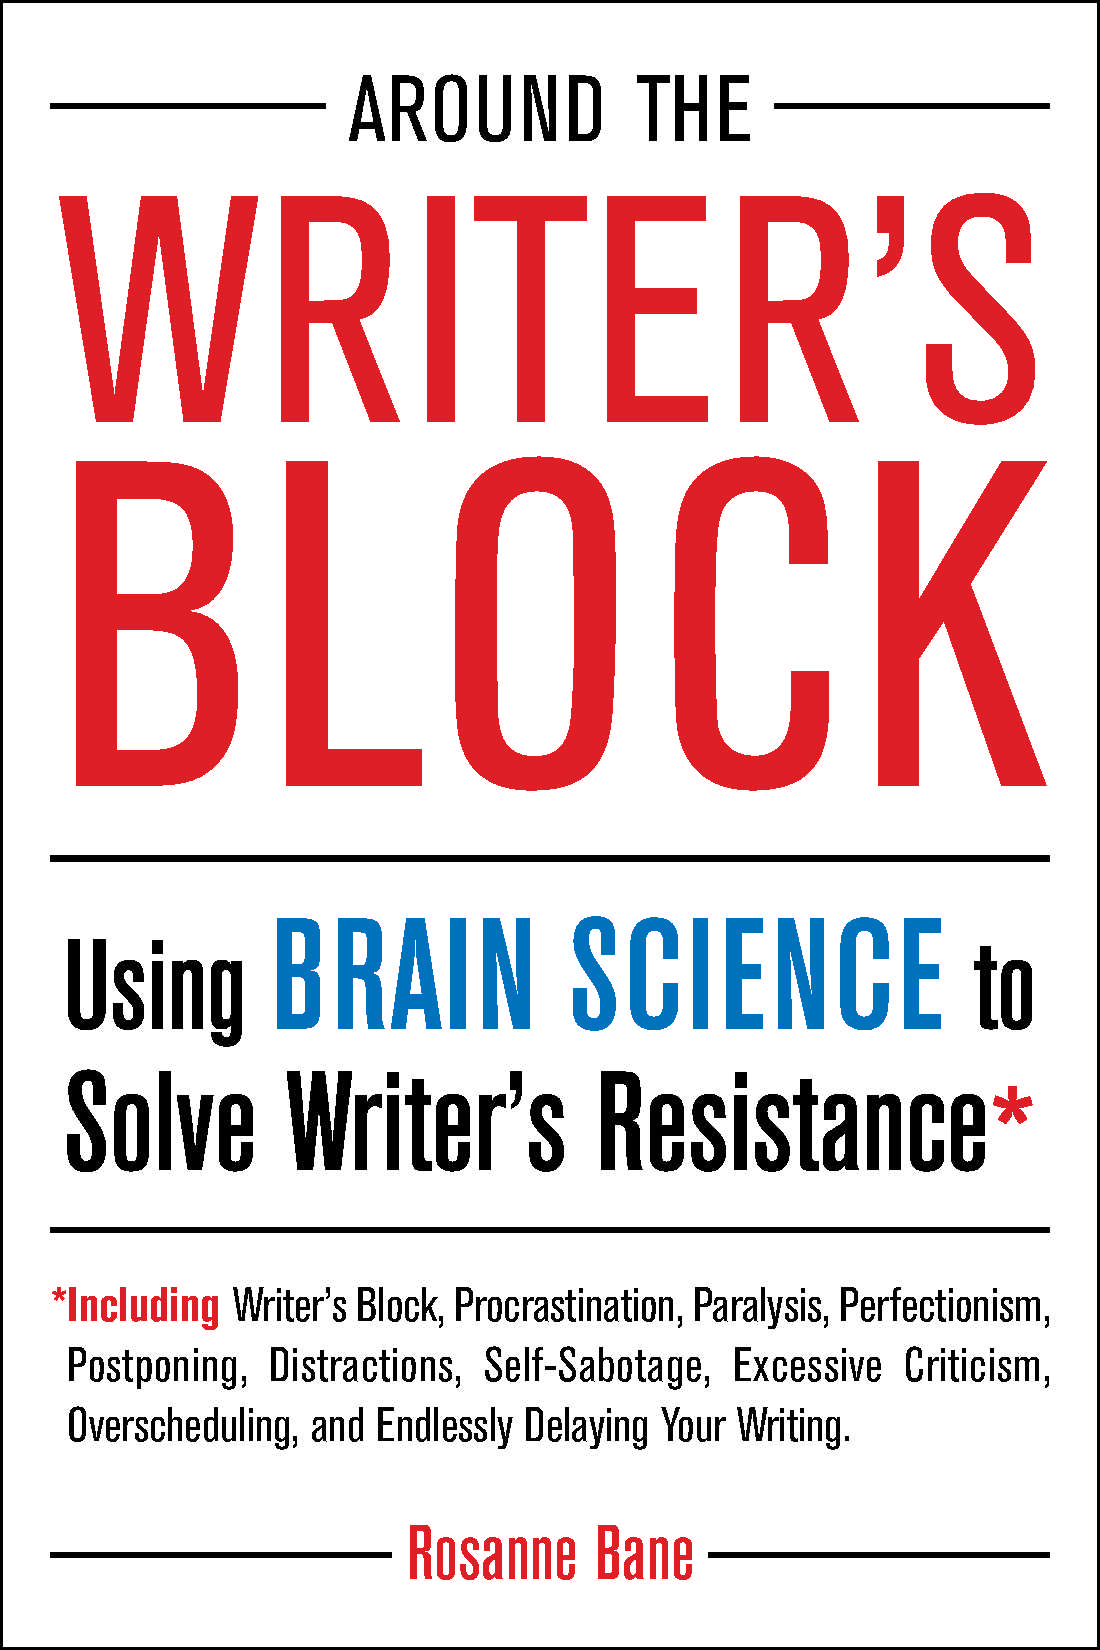 Research writing help reviews